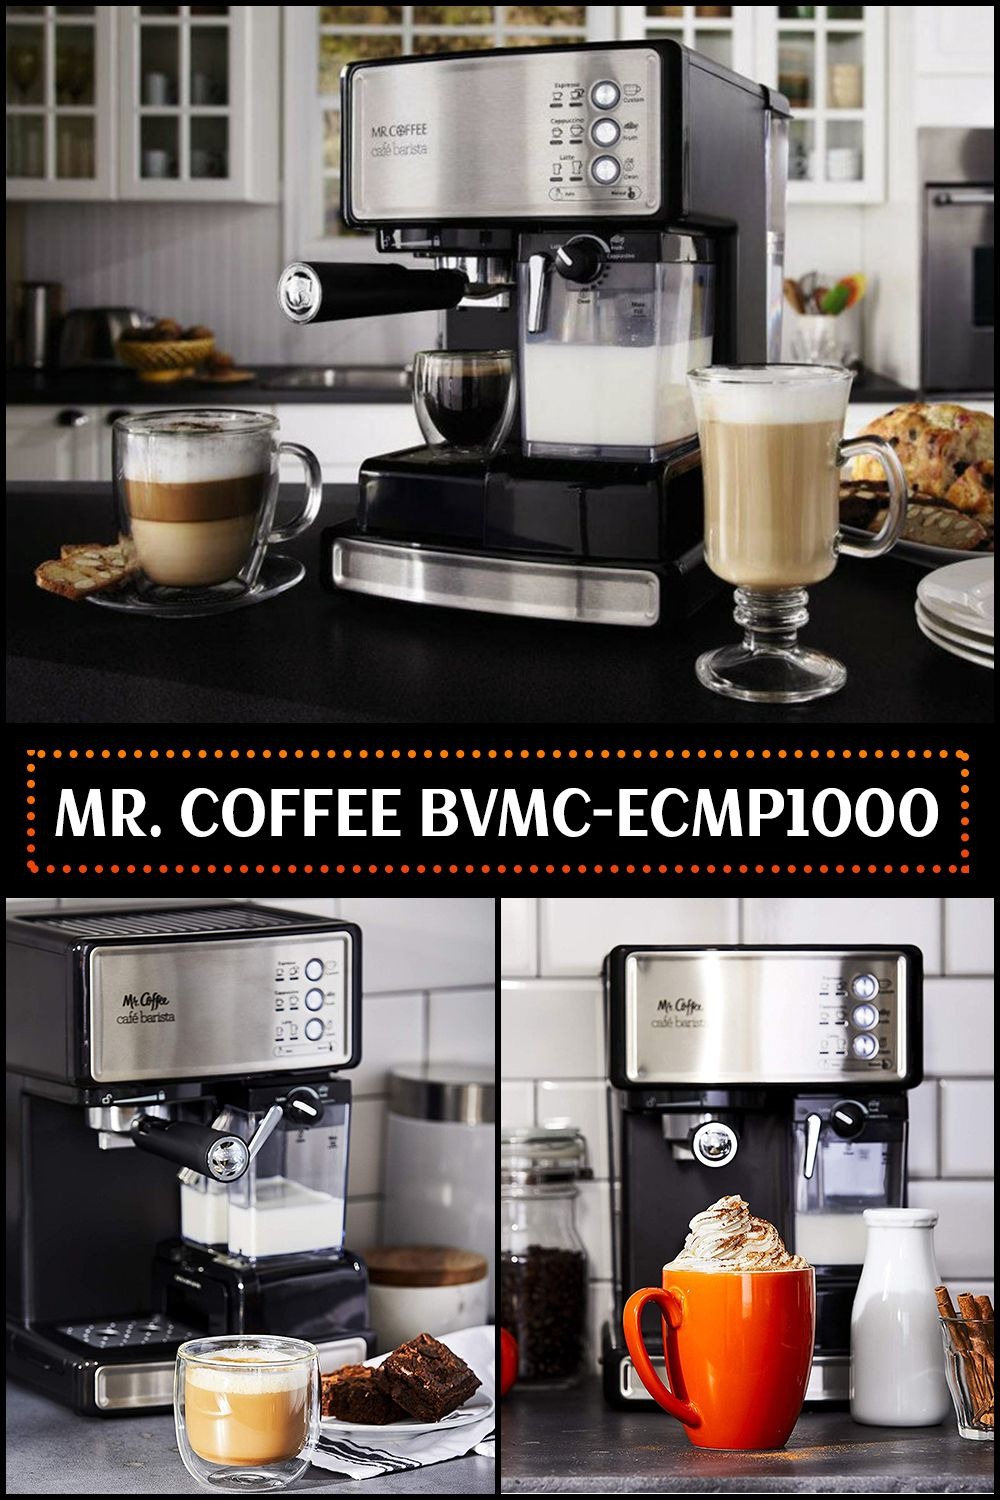 Mr. Coffee Cafe Barista BVMCECMP1000 Review Cafe